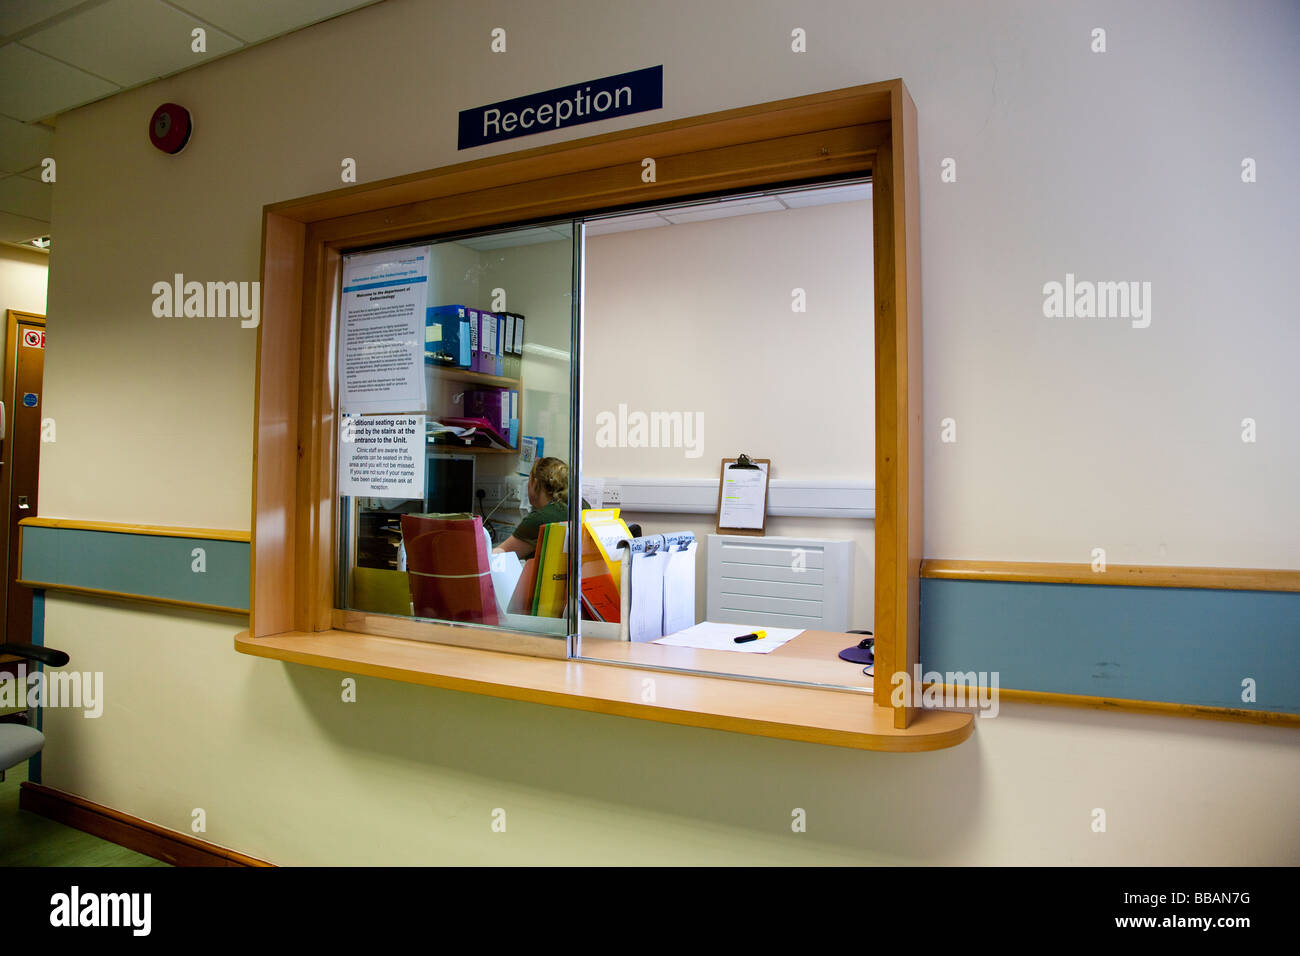 Christies Hospital reception - Stock Image